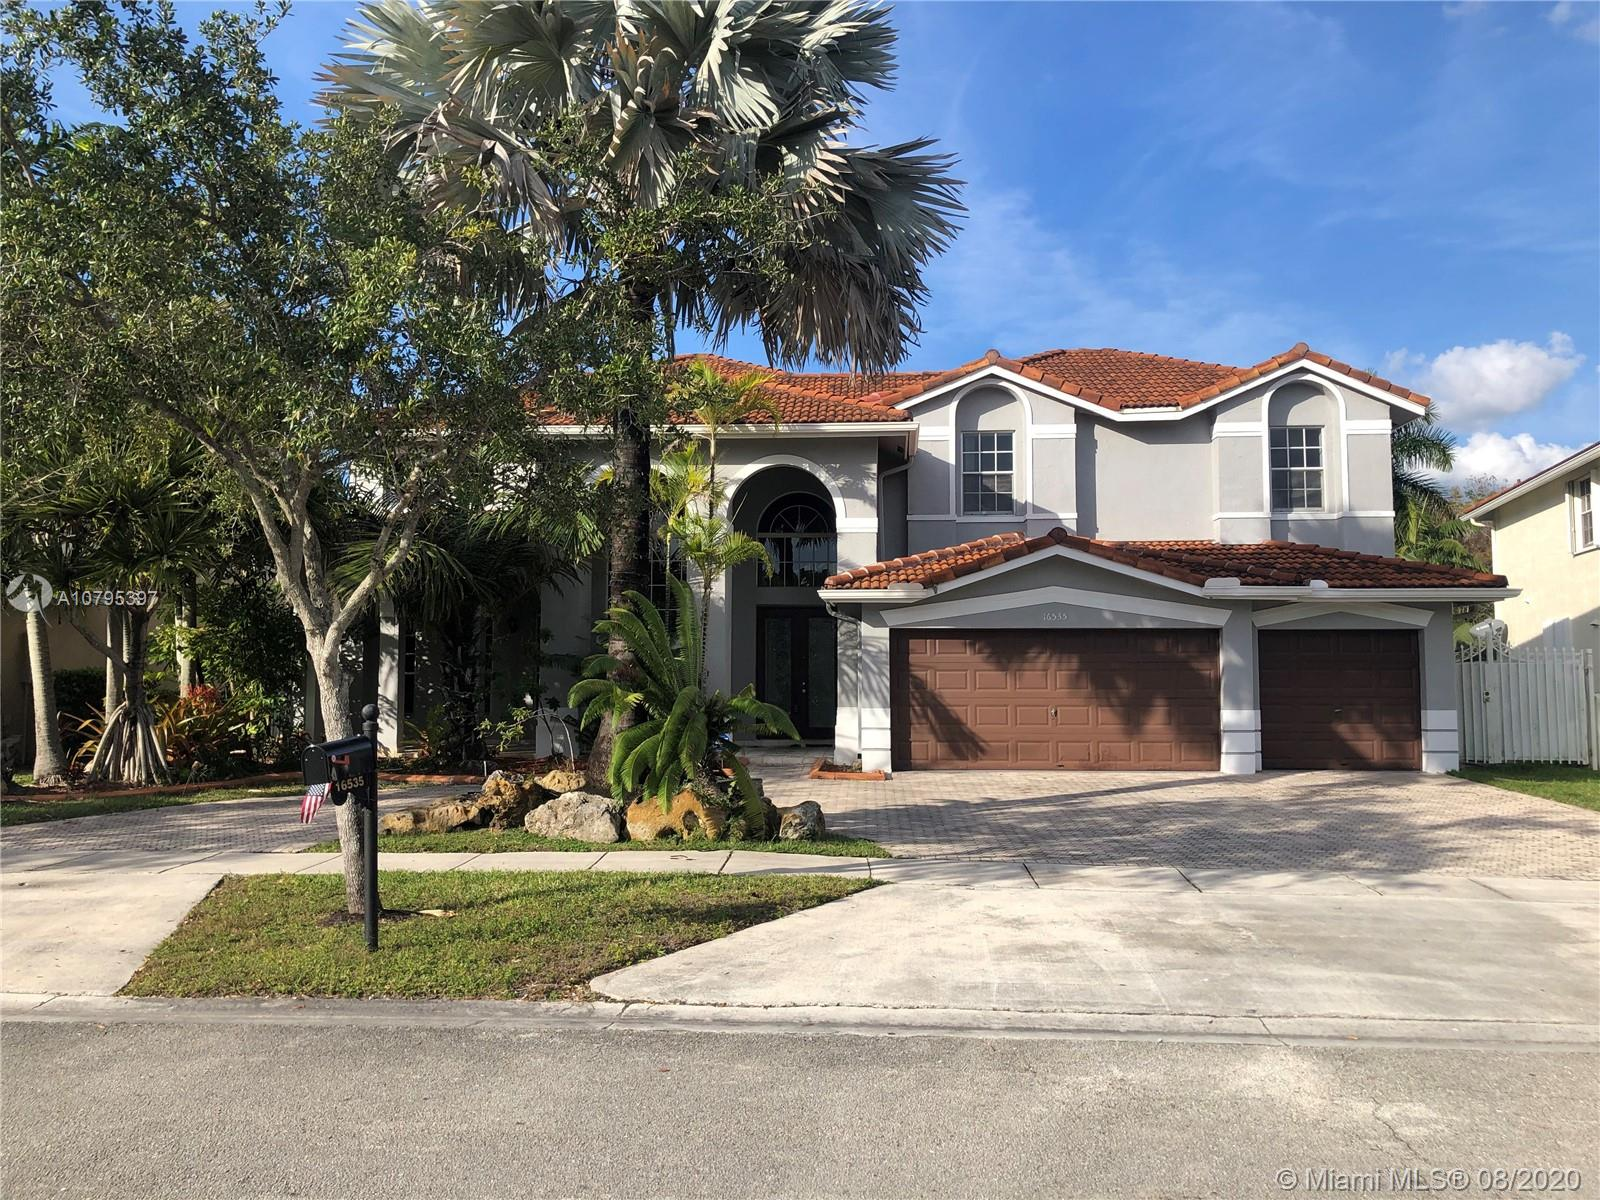 , great backyard waterfront and a pool, overlooking a natural preserve, three car garage, this is one of the nicest floor plans you will find in much sought after Spring Valley Estates, you just can't beat this location